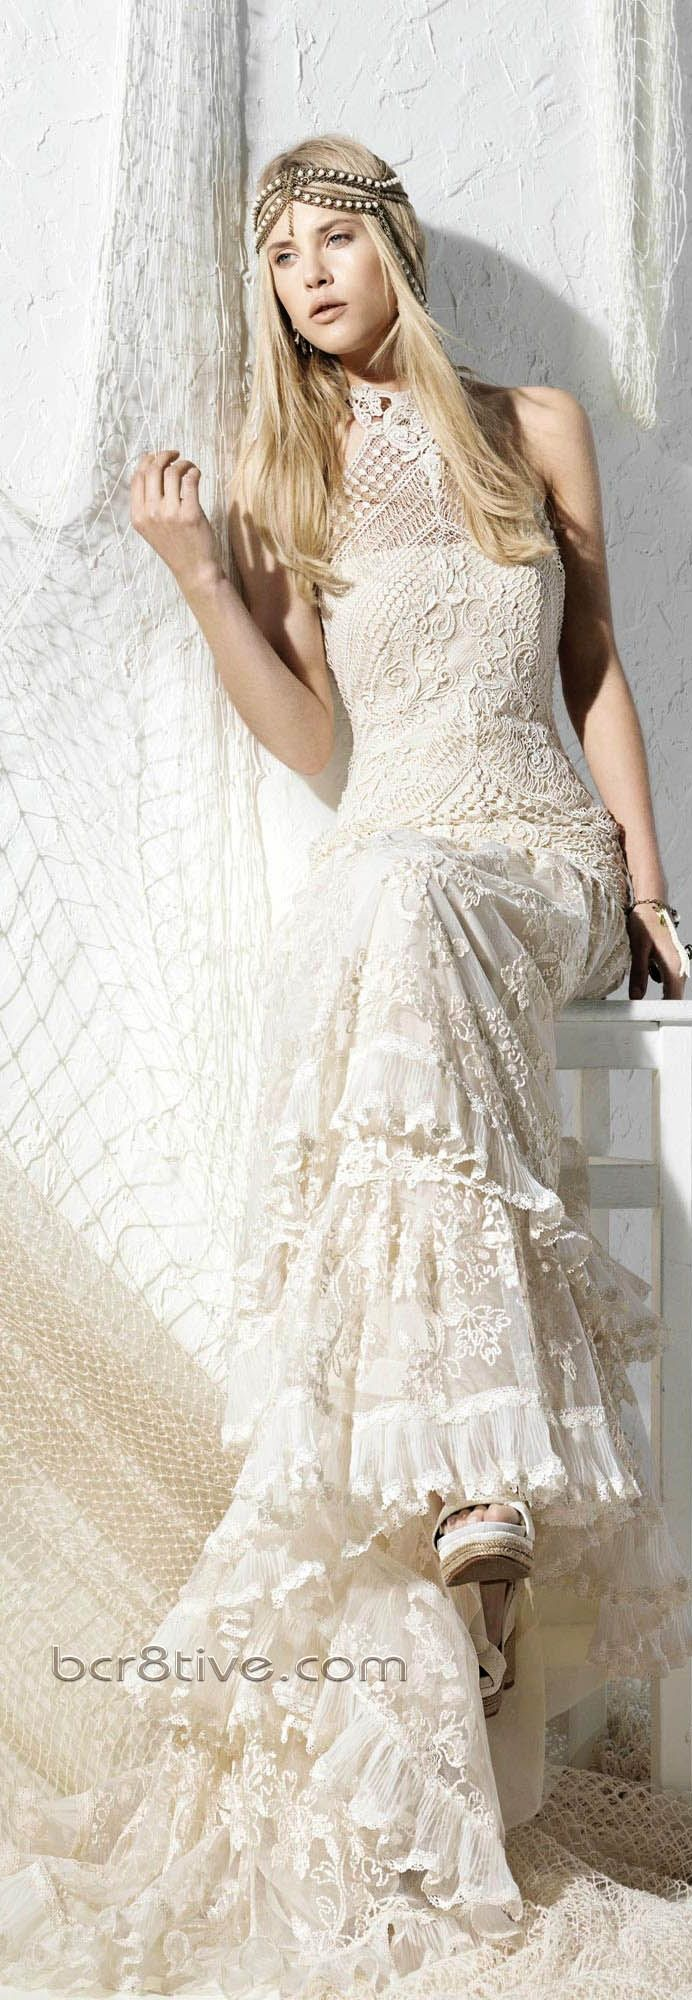 Pin by patie on mode pinterest wedding dress lace embroidery